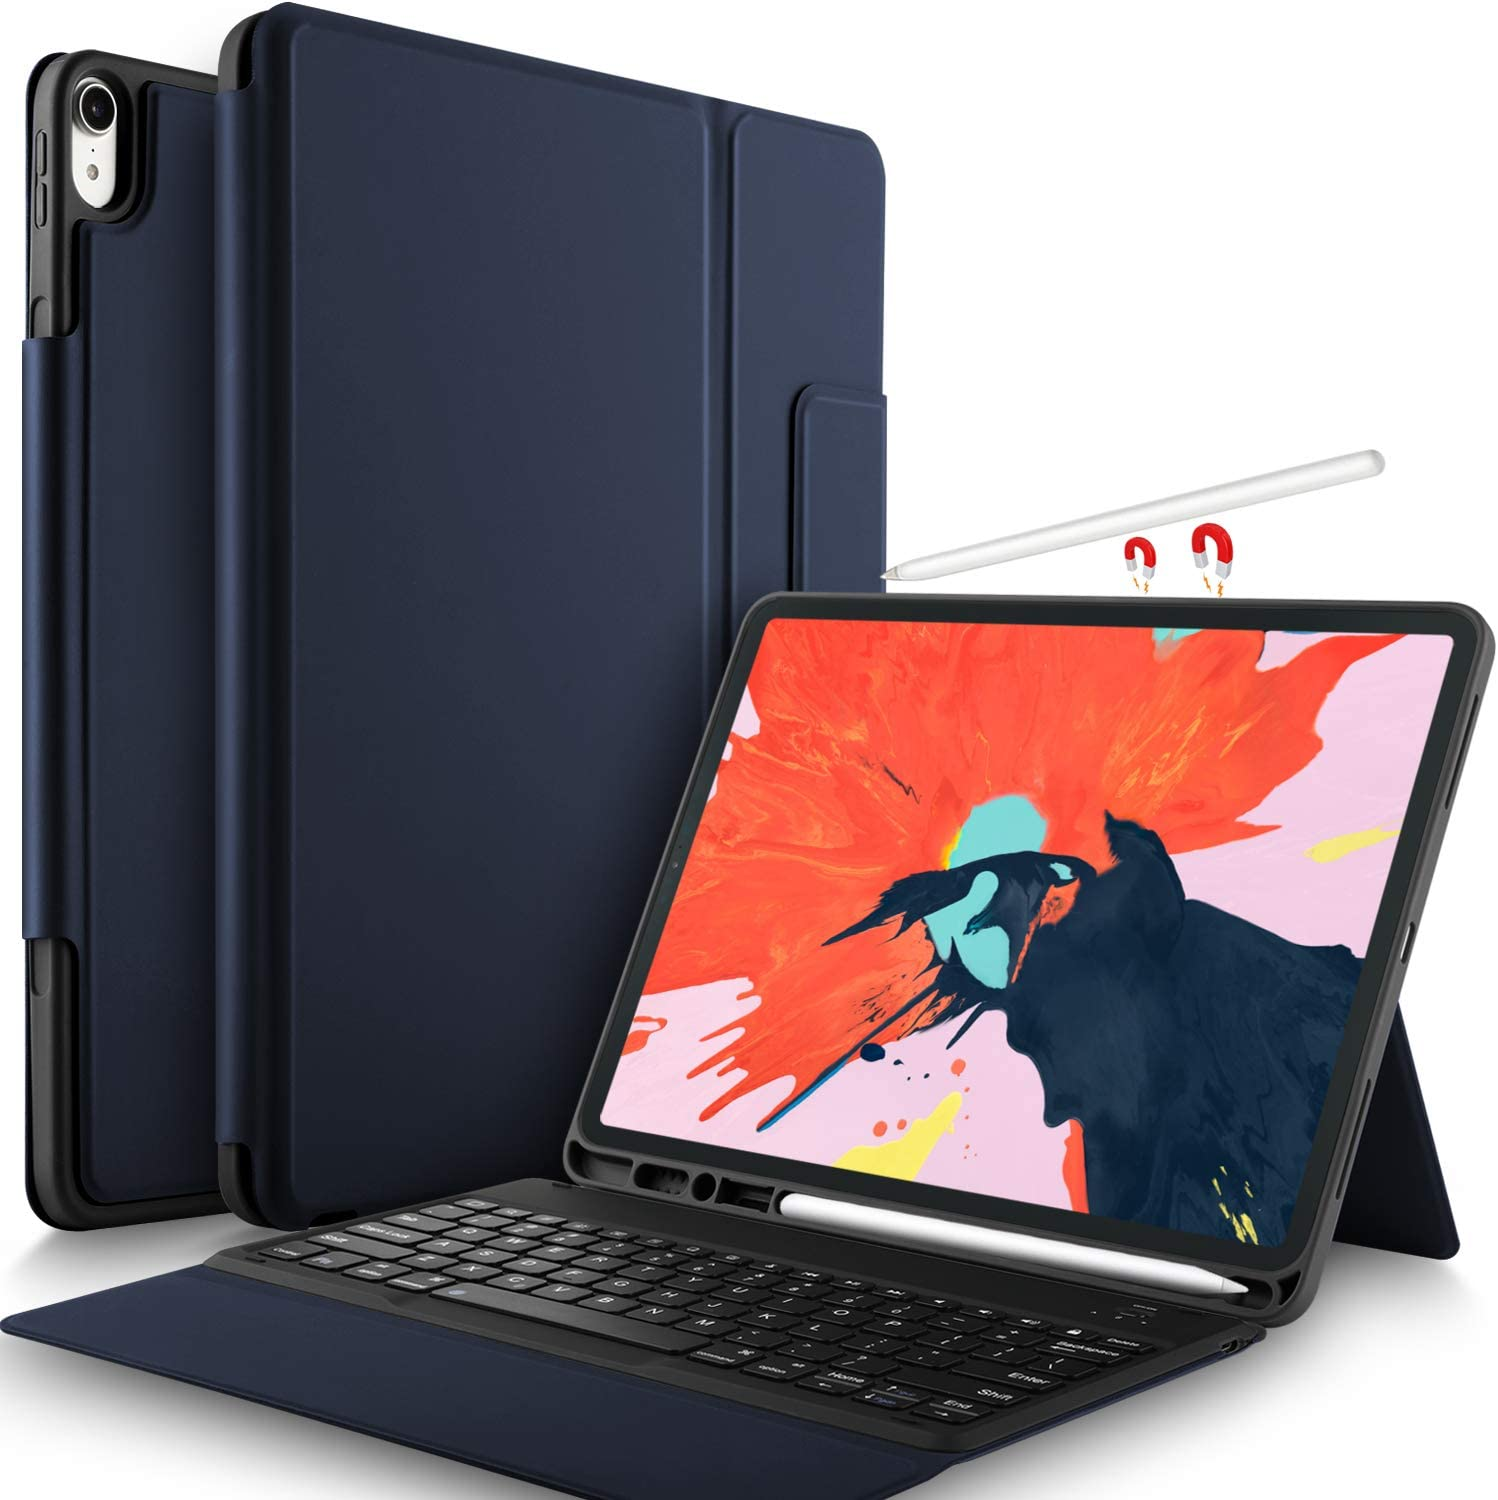 IVSO Keyboard Case for iPad Pro 12.9 2018-3rd Gen One-Piece Wireless Keyboard [Compatible Apple Pencil Charging] Auto Wake Sleep Case with Keyboard for iPad Pro 12.9 2018 (Not for 2017/2015) Blue